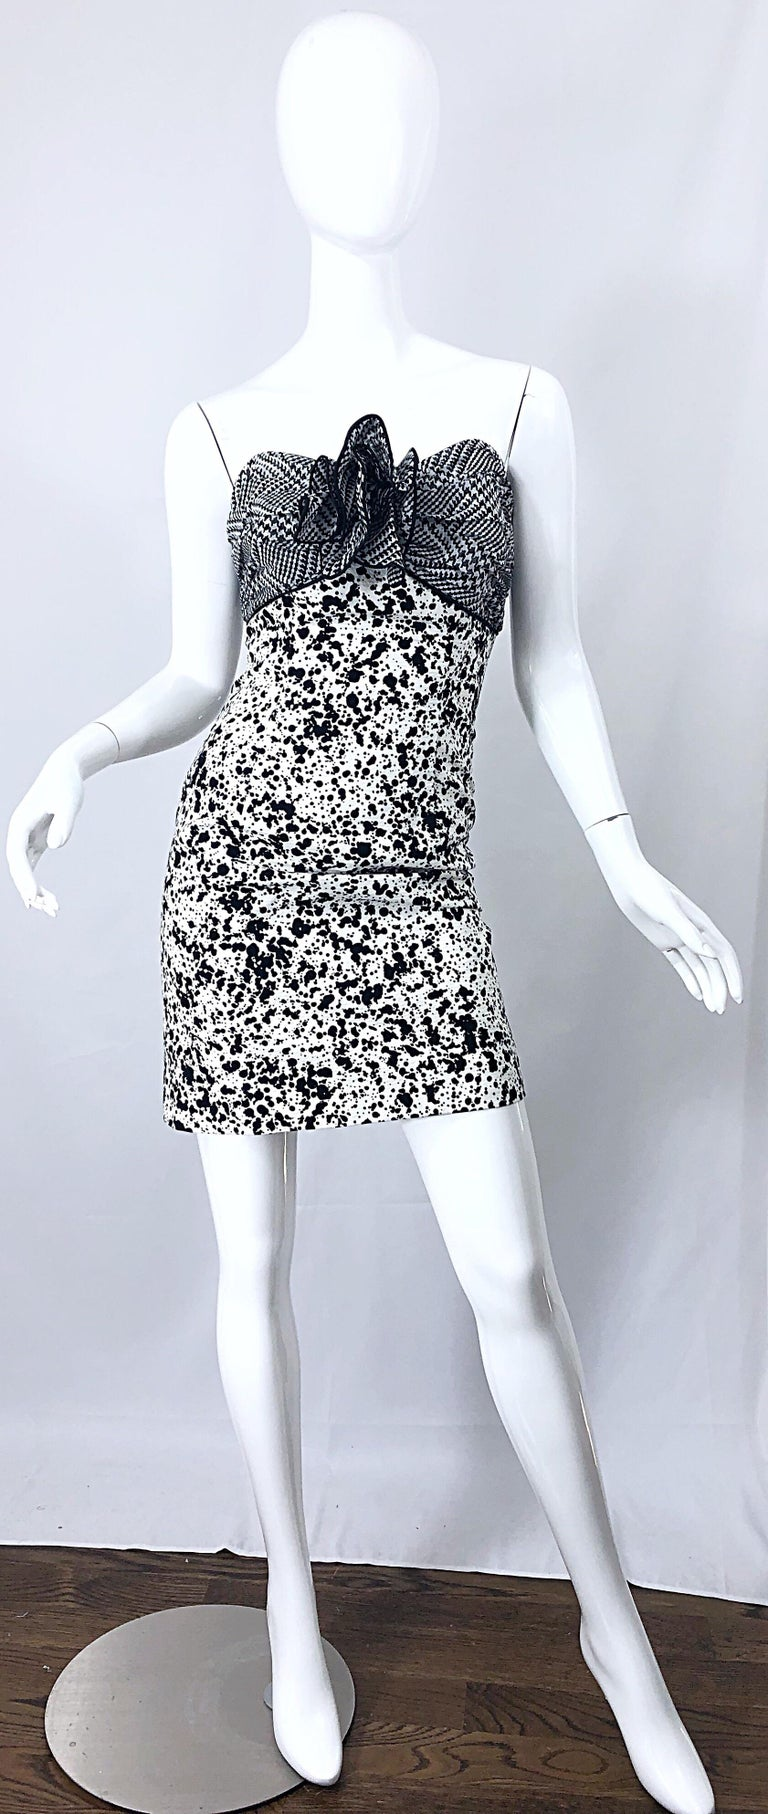 Stylish 90s PATRICIA RHODES for I MAGNIN black and white strapless cocktail mini dress! Features a black and white houndstooth silk chiffon bodice. Large chiffon flower appliqué at center bust is so SJP in,